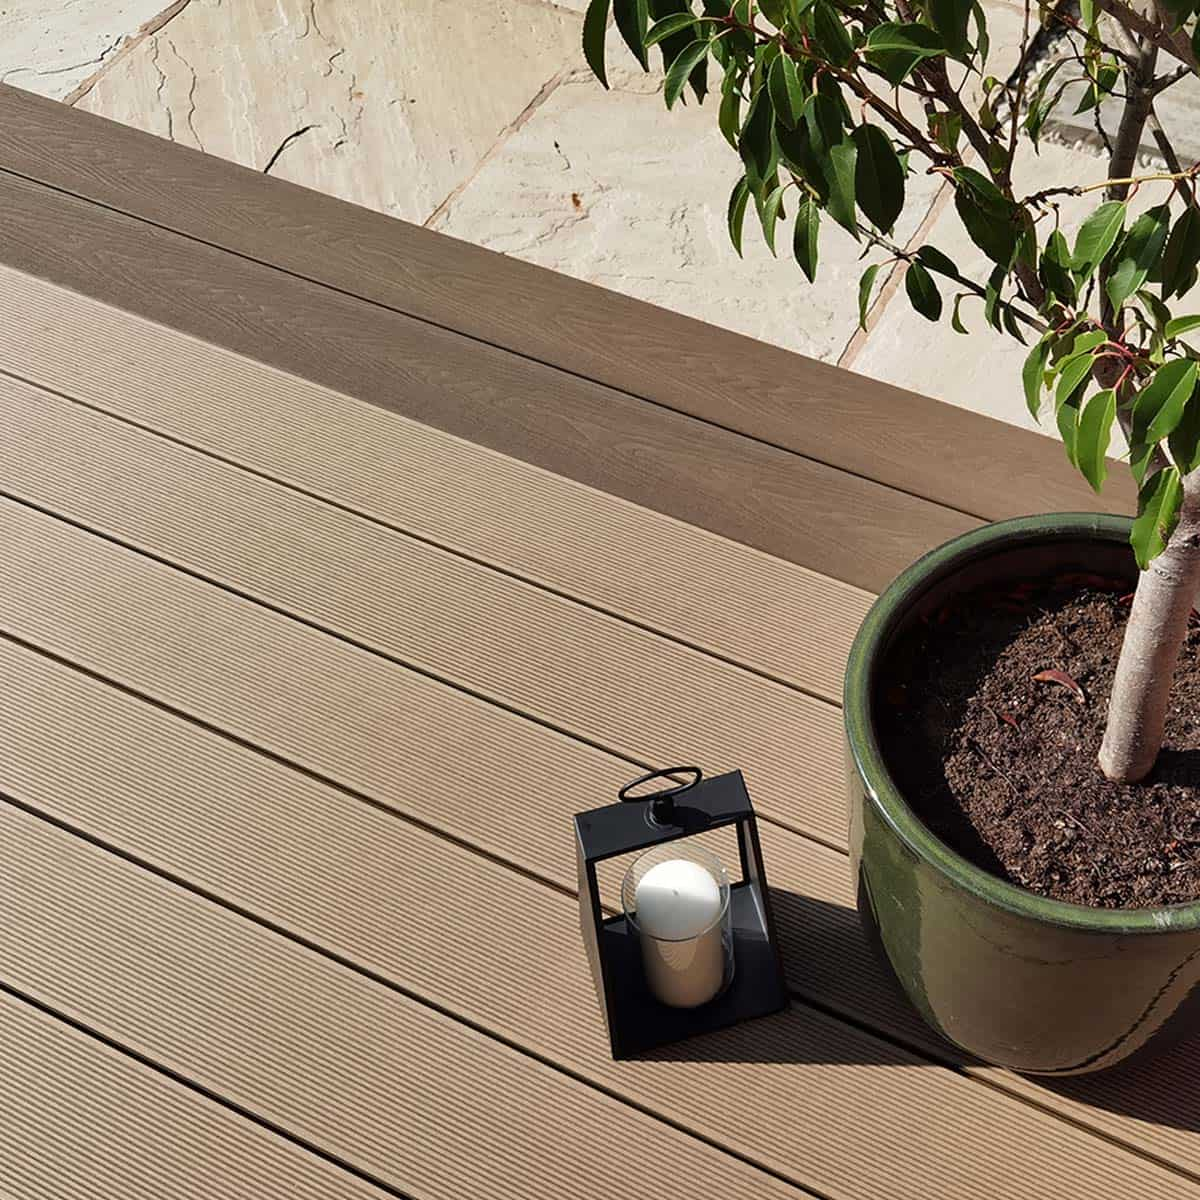 Essential Teak Composite Decking BUY NOW